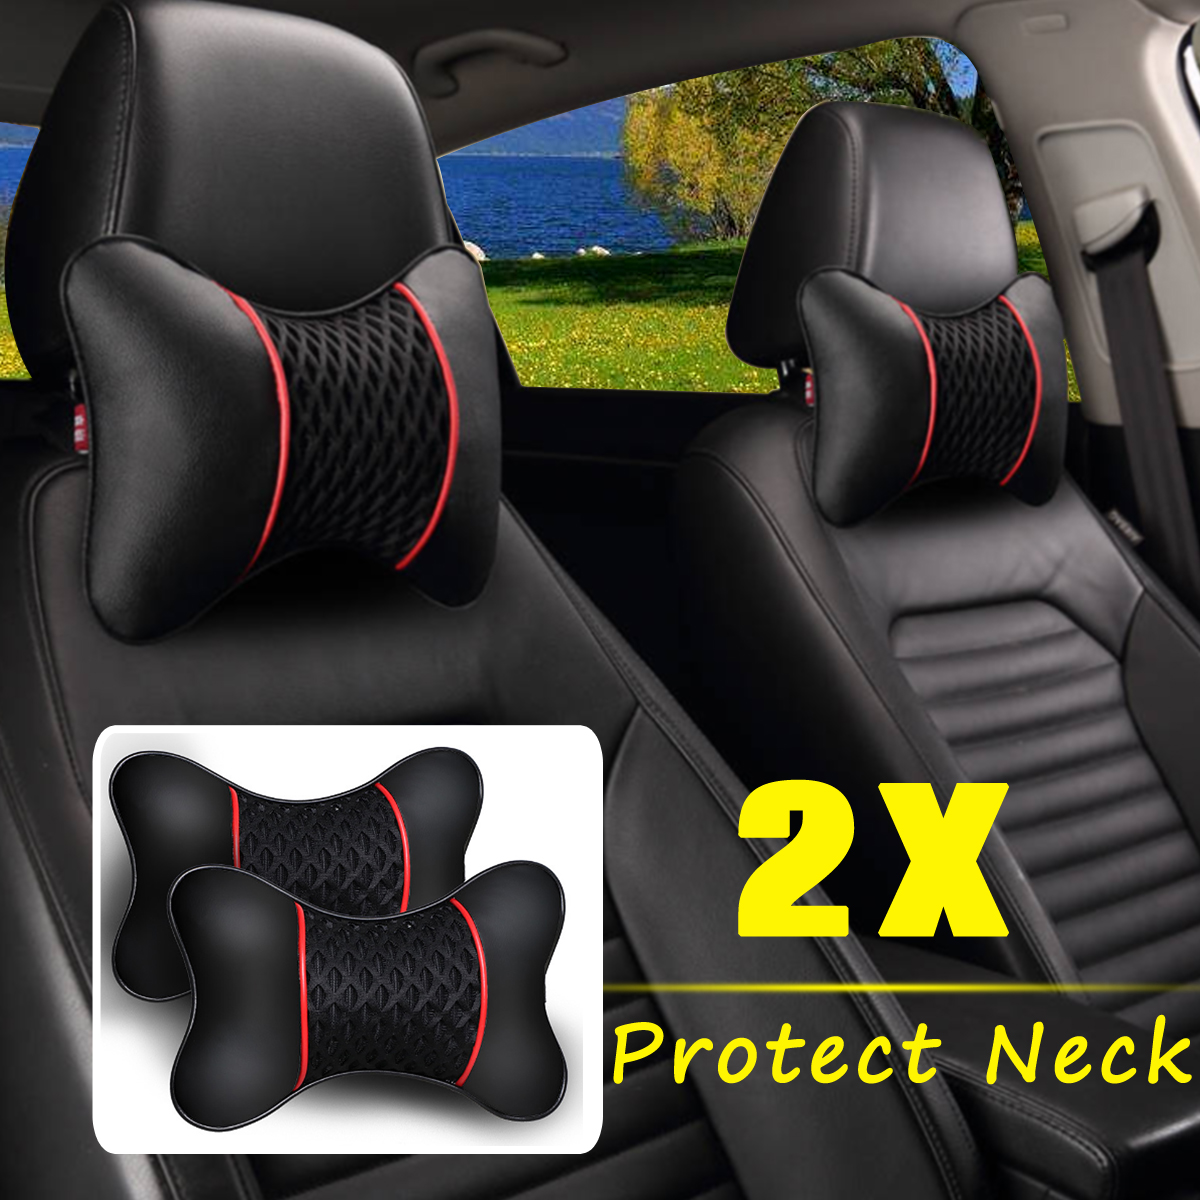 2Pcs PU Leather Knitted Car Pillows Headrest Neck Rest Cushion Support Seat Accessories Auto Black Safety Pillow Universal Decor2Pcs PU Leather Knitted Car Pillows Headrest Neck Rest Cushion Support Seat Accessories Auto Black Safety Pillow Universal Decor